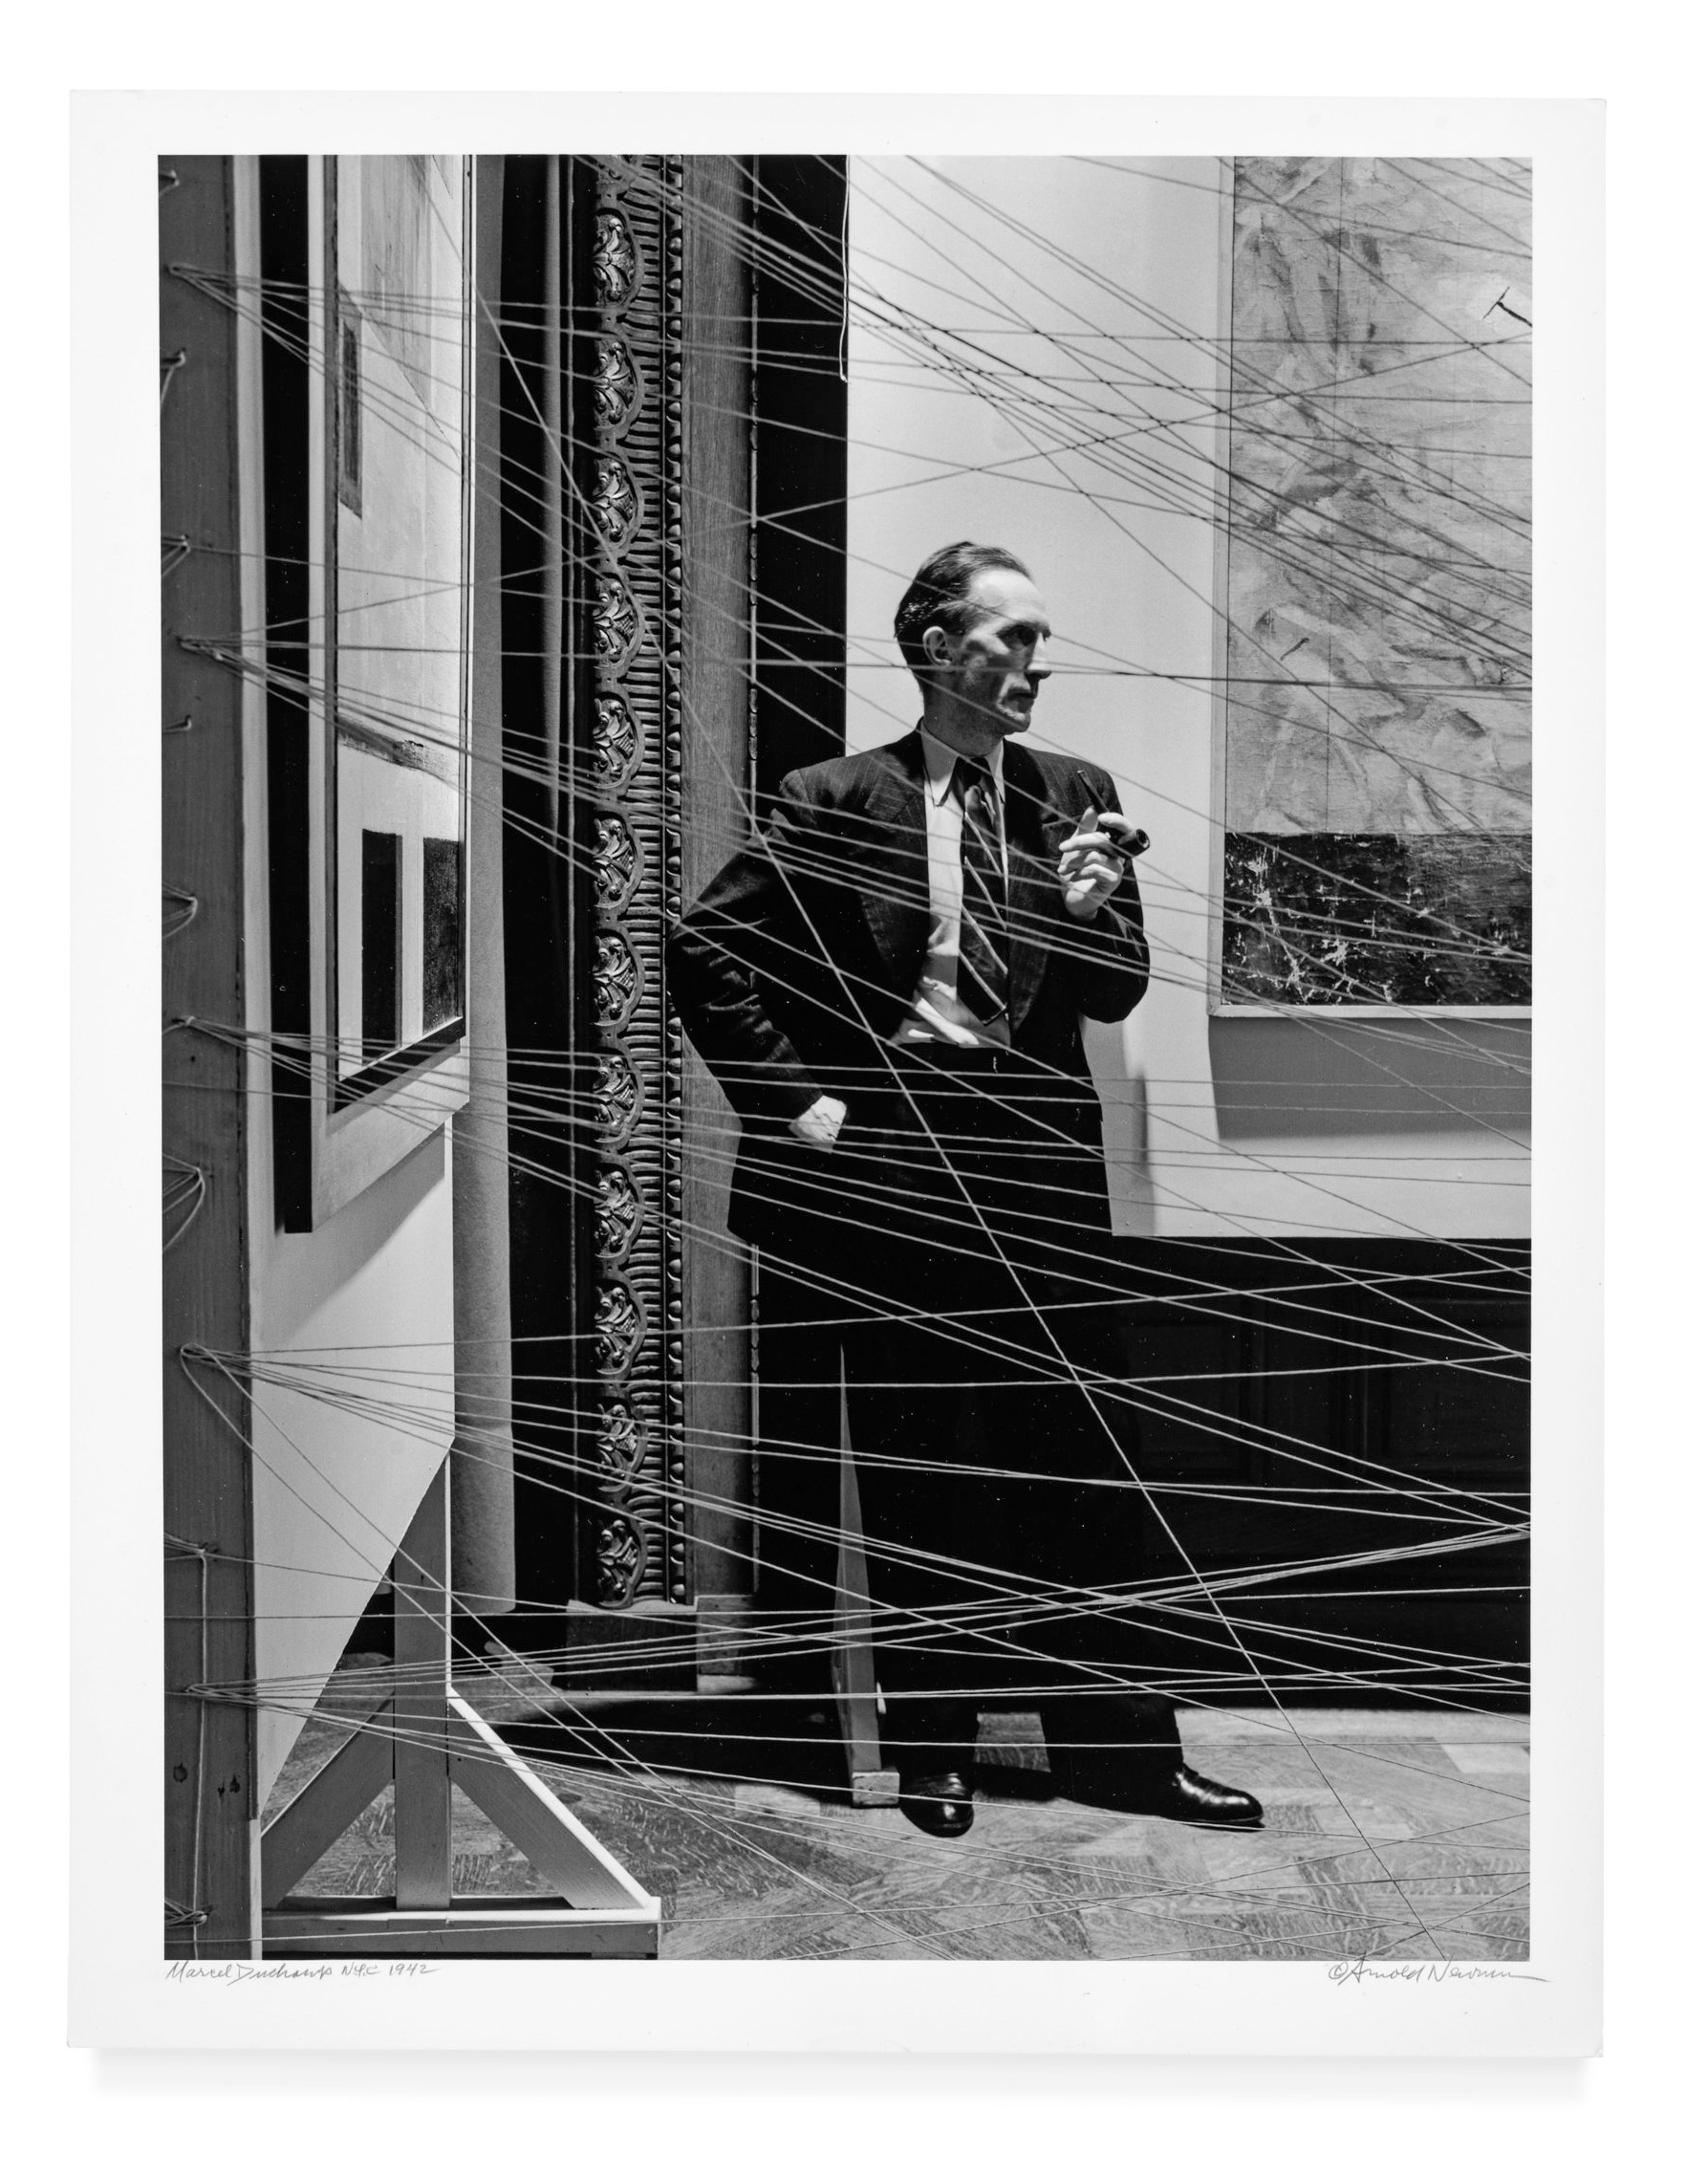 """Marcel Duchamp from """"Seeing Arnold Newman"""" published by Radius Books © 2018"""